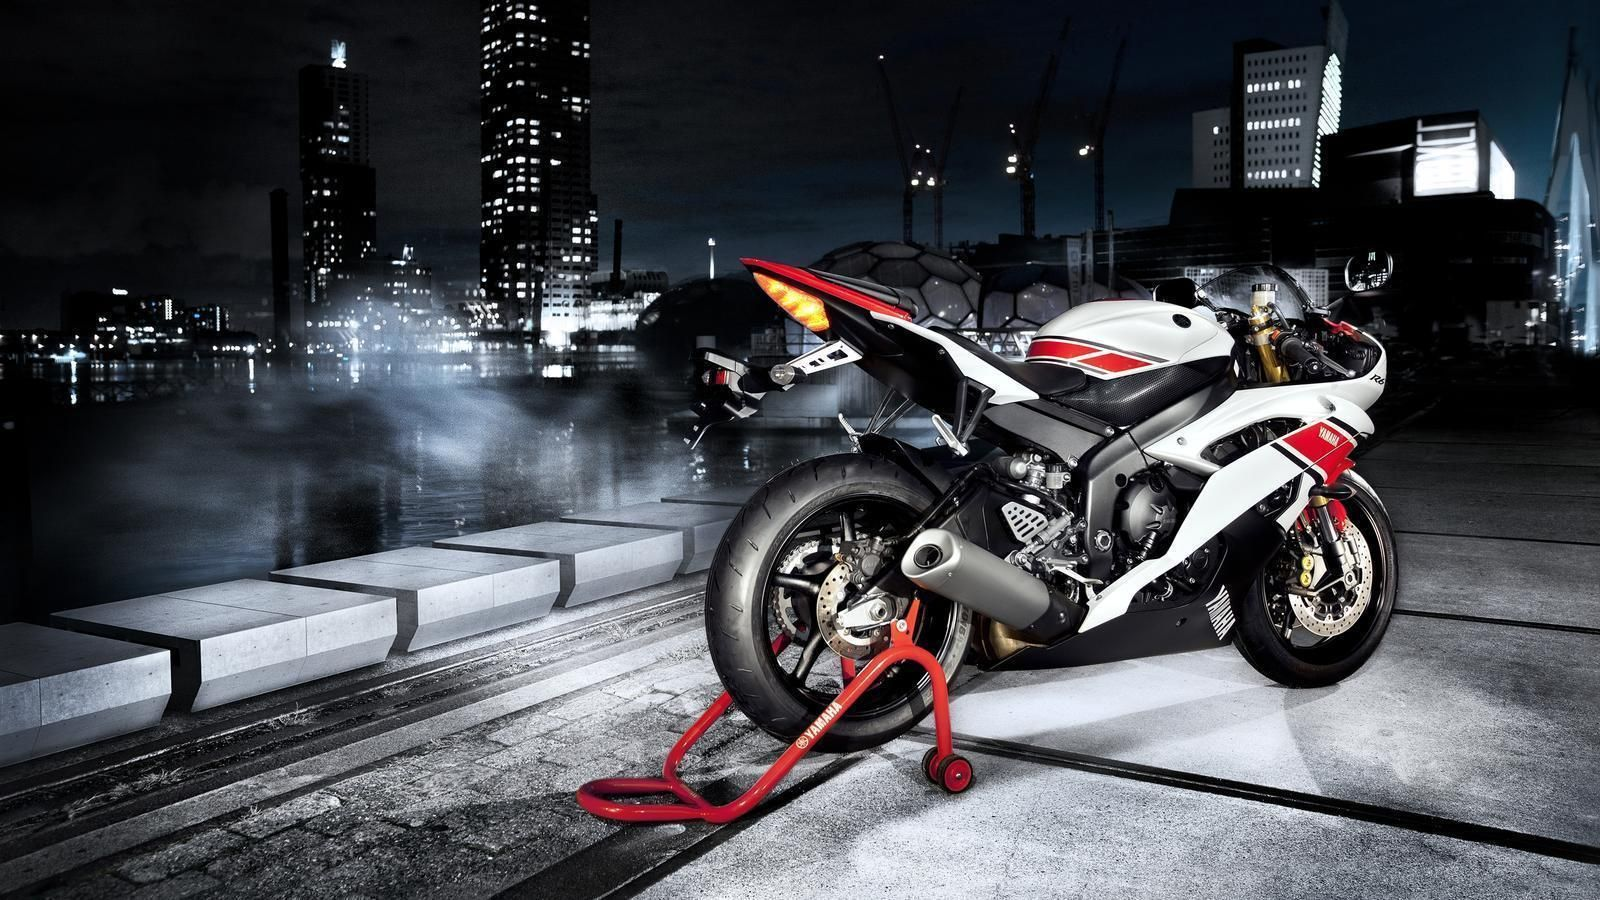 Yamaha Bike Full Hd Wallpapers Free Download 42 With Images